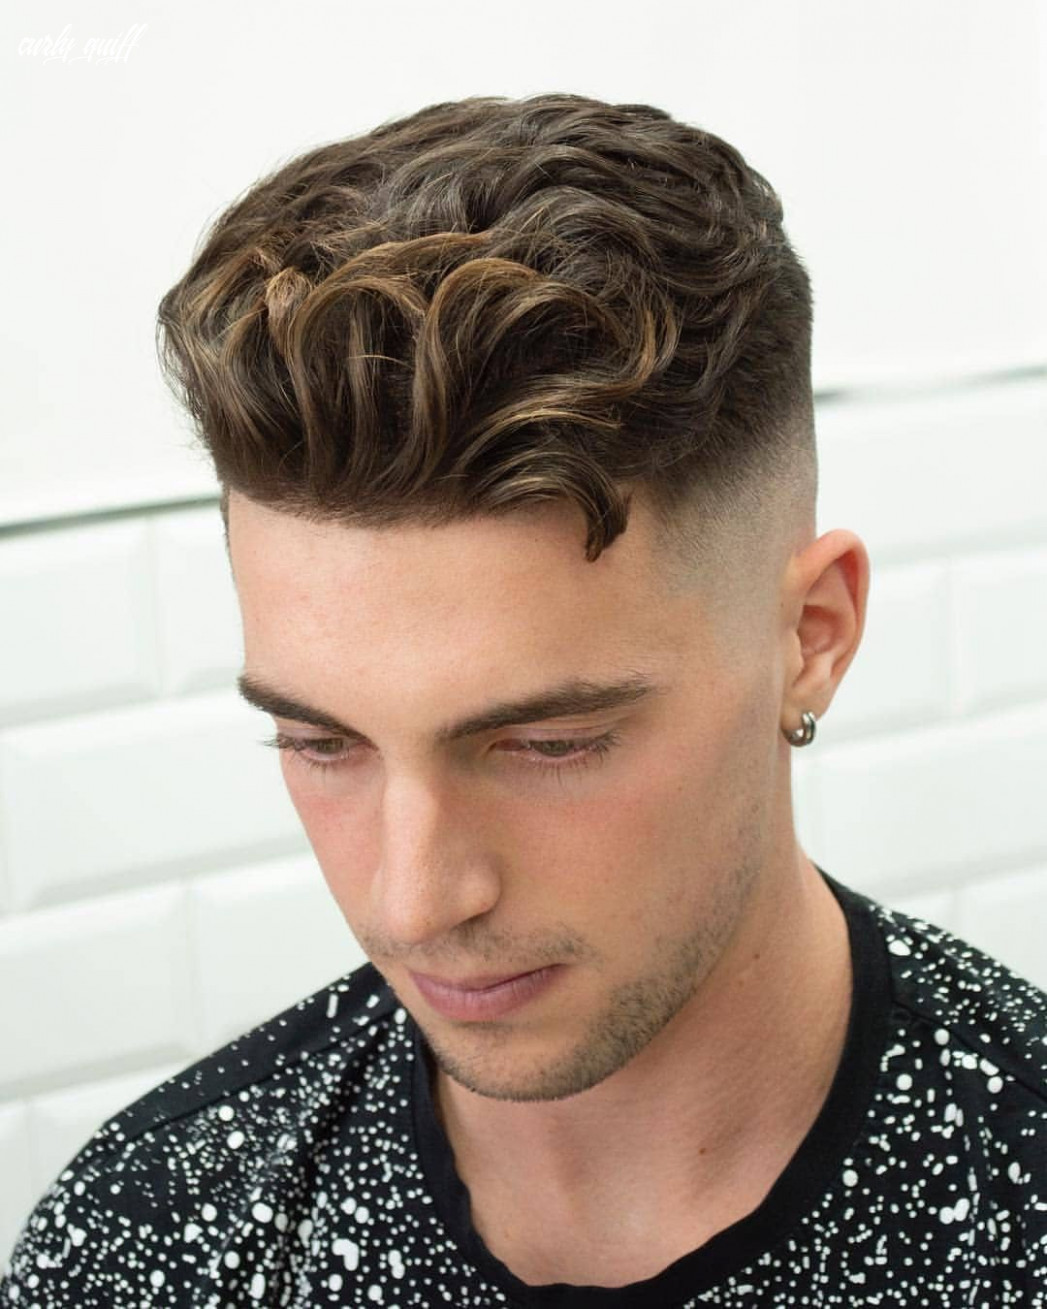 10 quiff hairstyles we absolutely love | undercut hairstyles, wavy